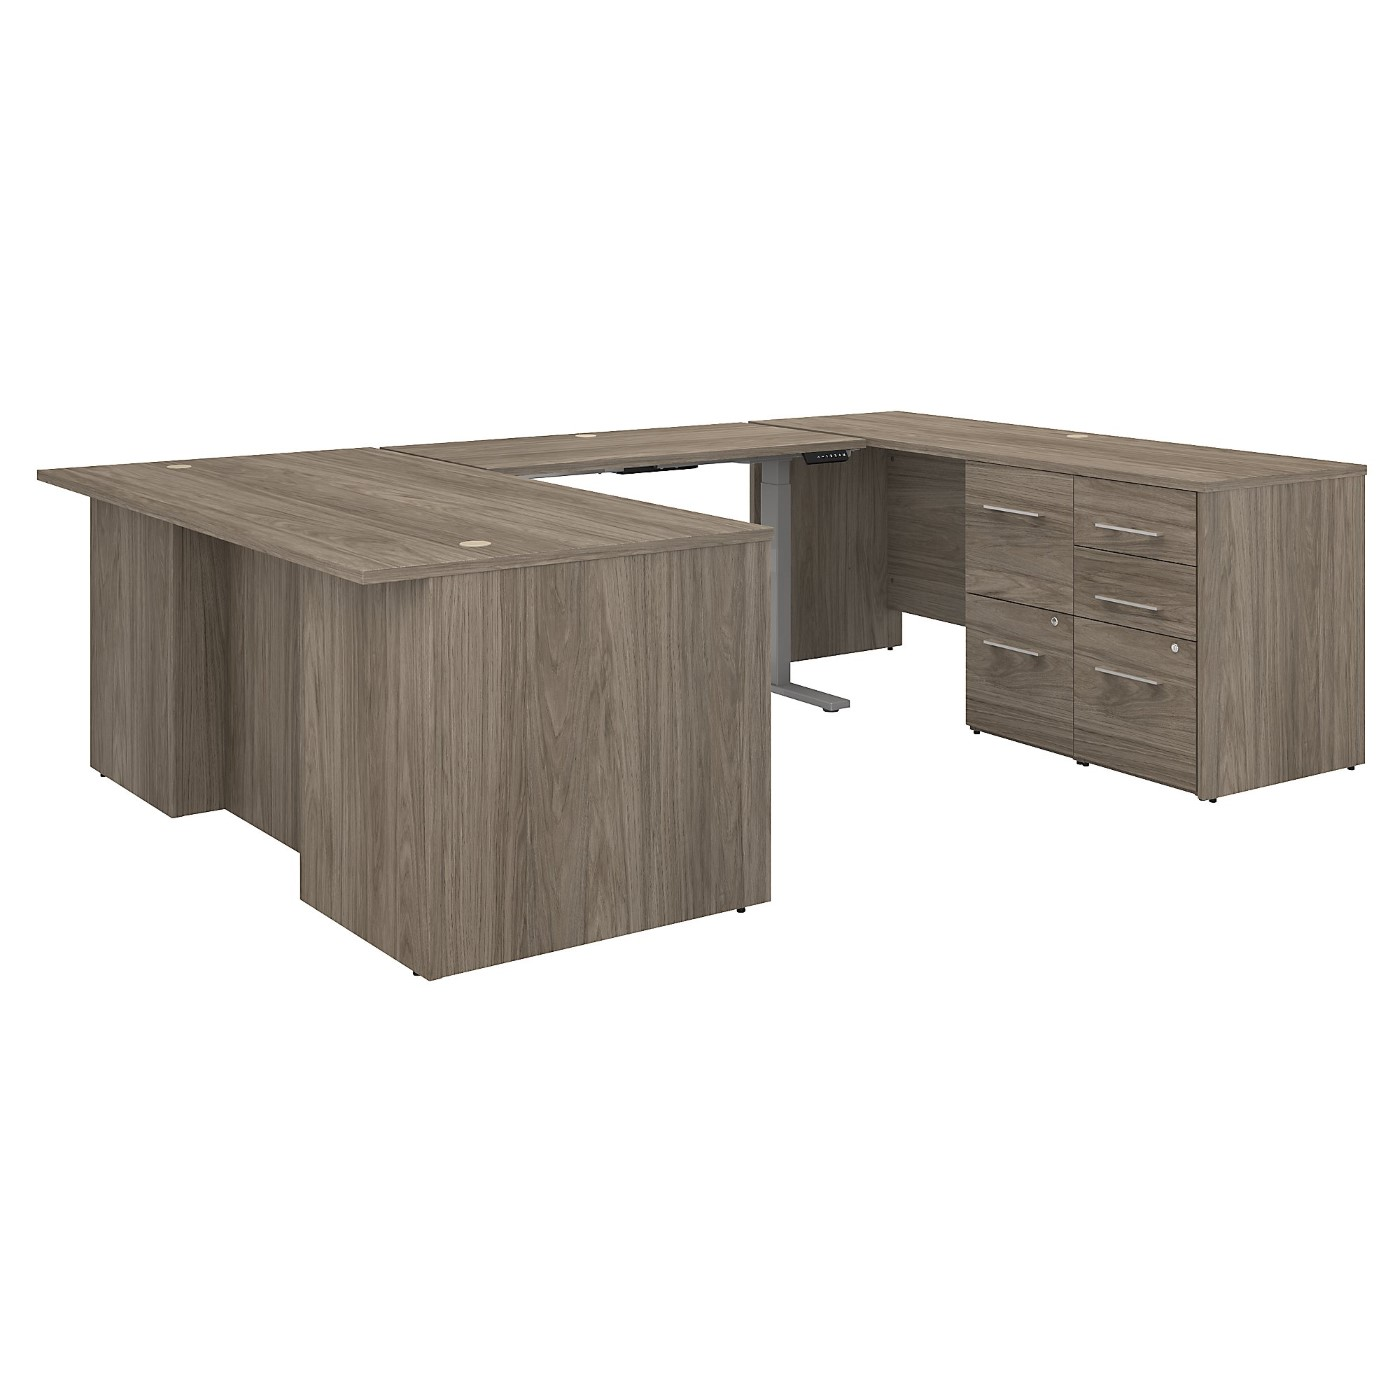 BUSH BUSINESS FURNITURE OFFICE 500 72W HEIGHT ADJUSTABLE U SHAPED EXECUTIVE DESK WITH DRAWERS. FREE SHIPPING SALE DEDUCT 10% MORE ENTER '10percent' IN COUPON CODE BOX WHILE CHECKING OUT.